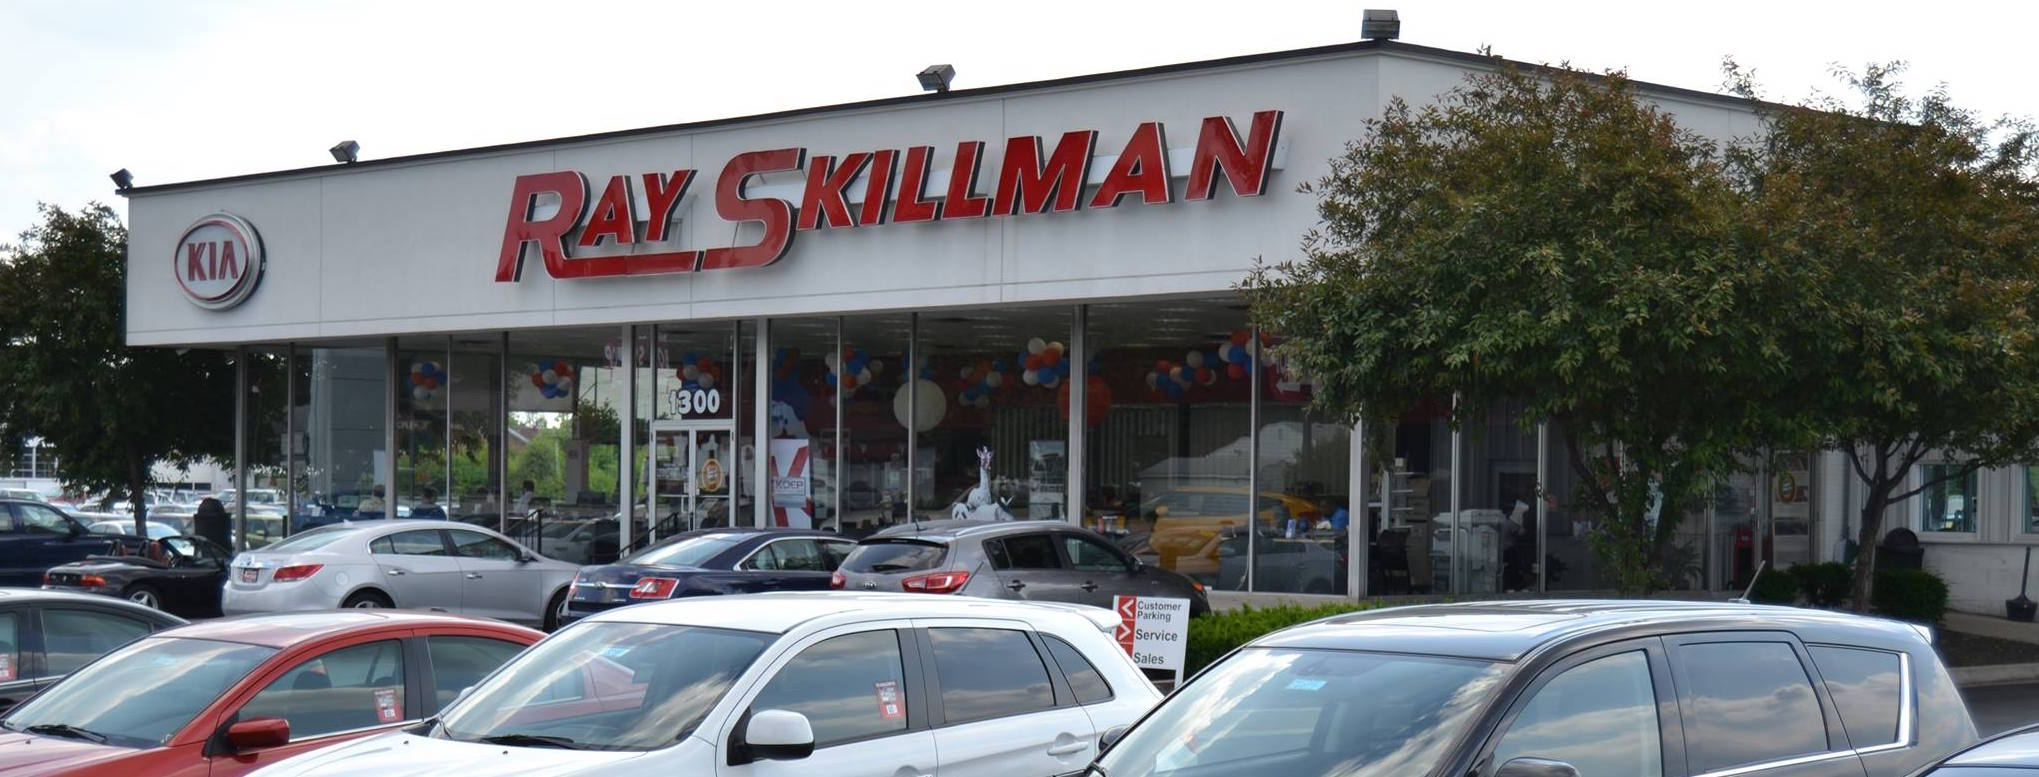 Charming Ray Skillman Shadeland Kia U0026 Mitsubishi Reviews | Automotive At 1300  Shadeland Ave   Indianapolis IN